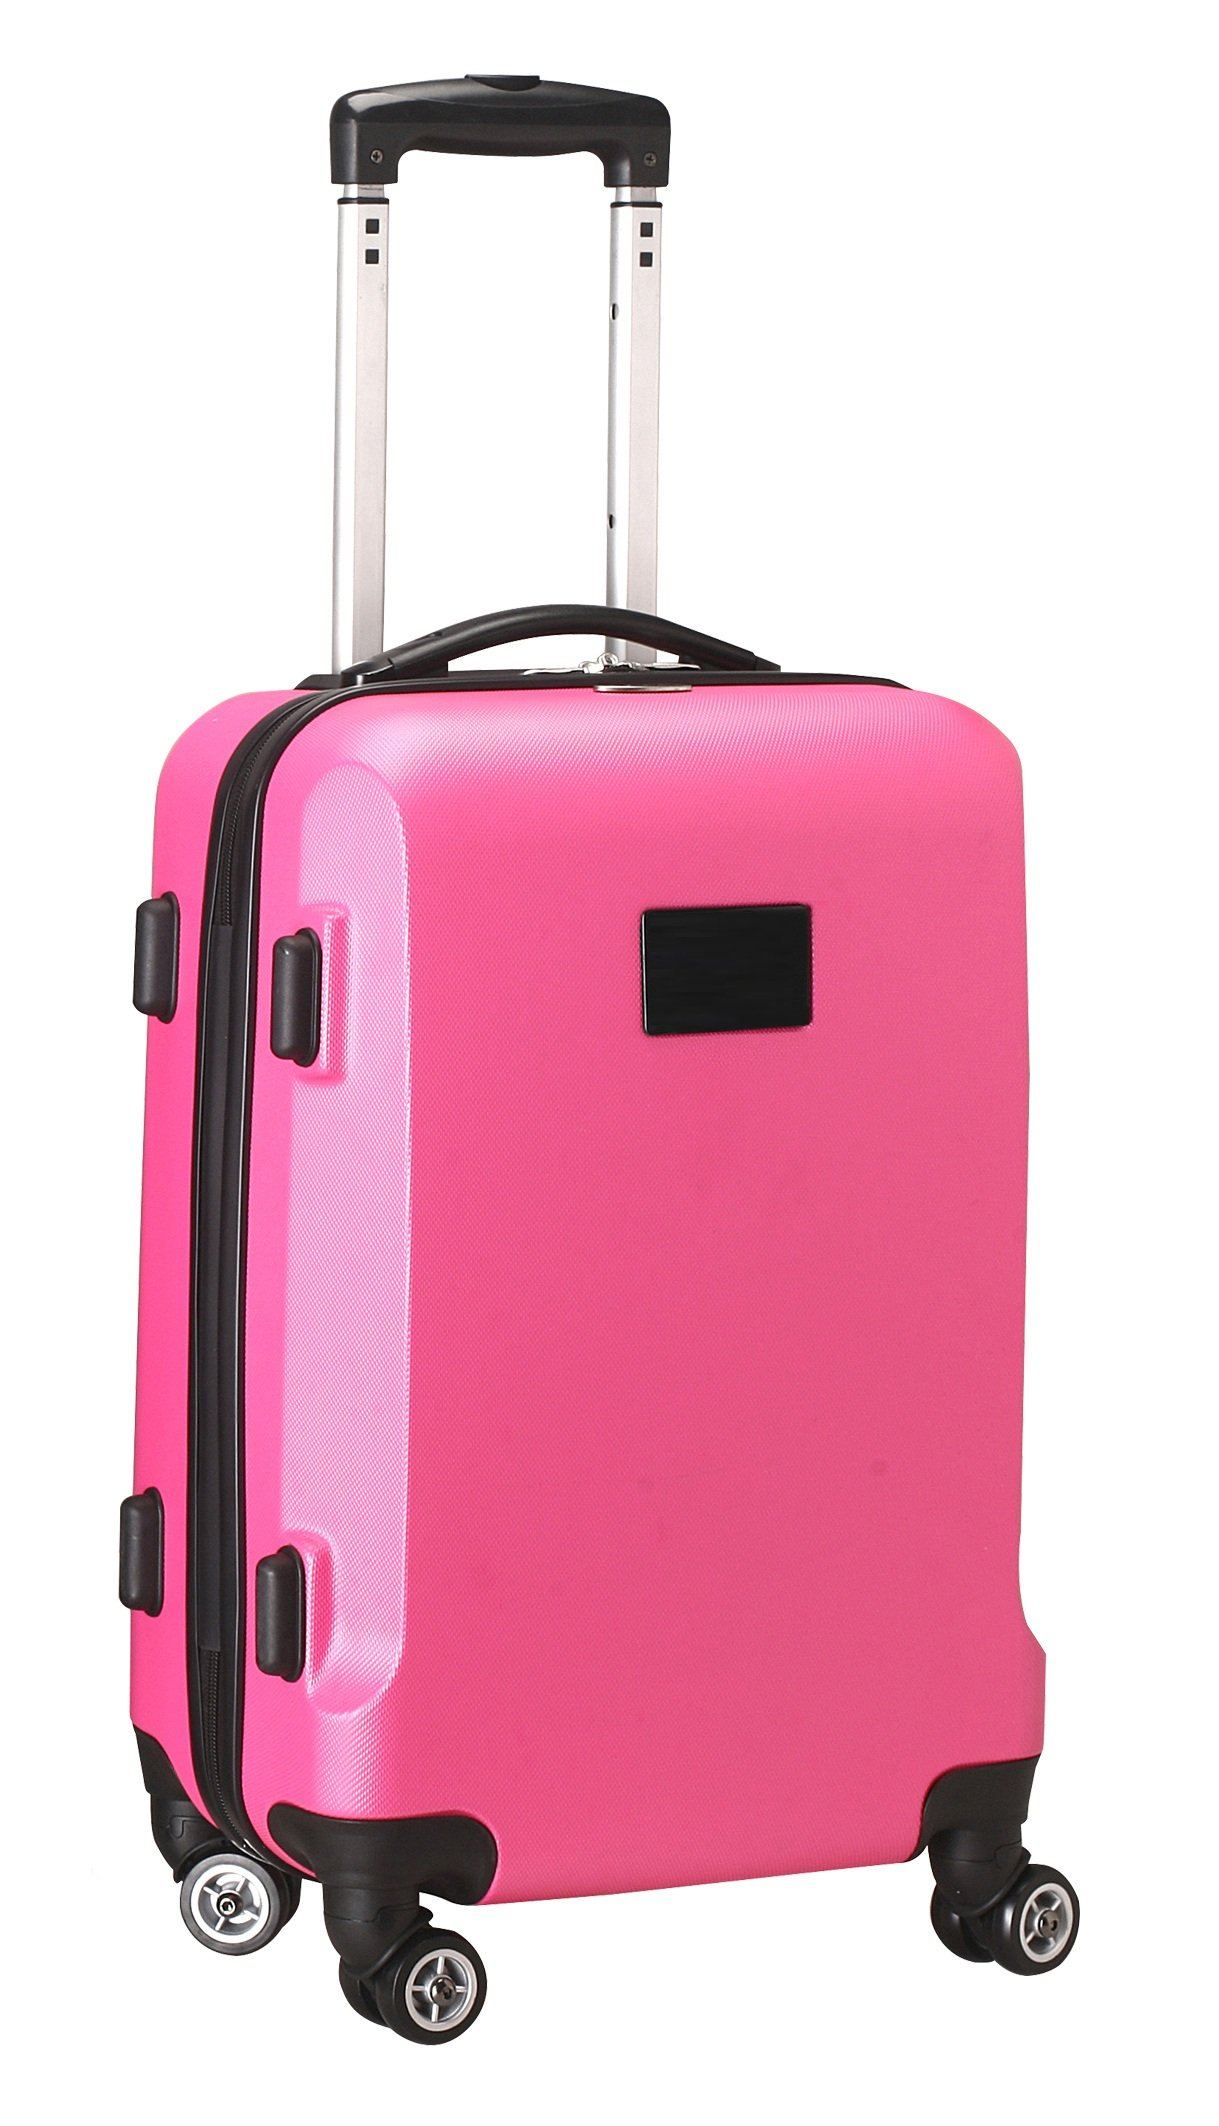 Denco Carry-On Hardcase Spinner, Pink by Denco